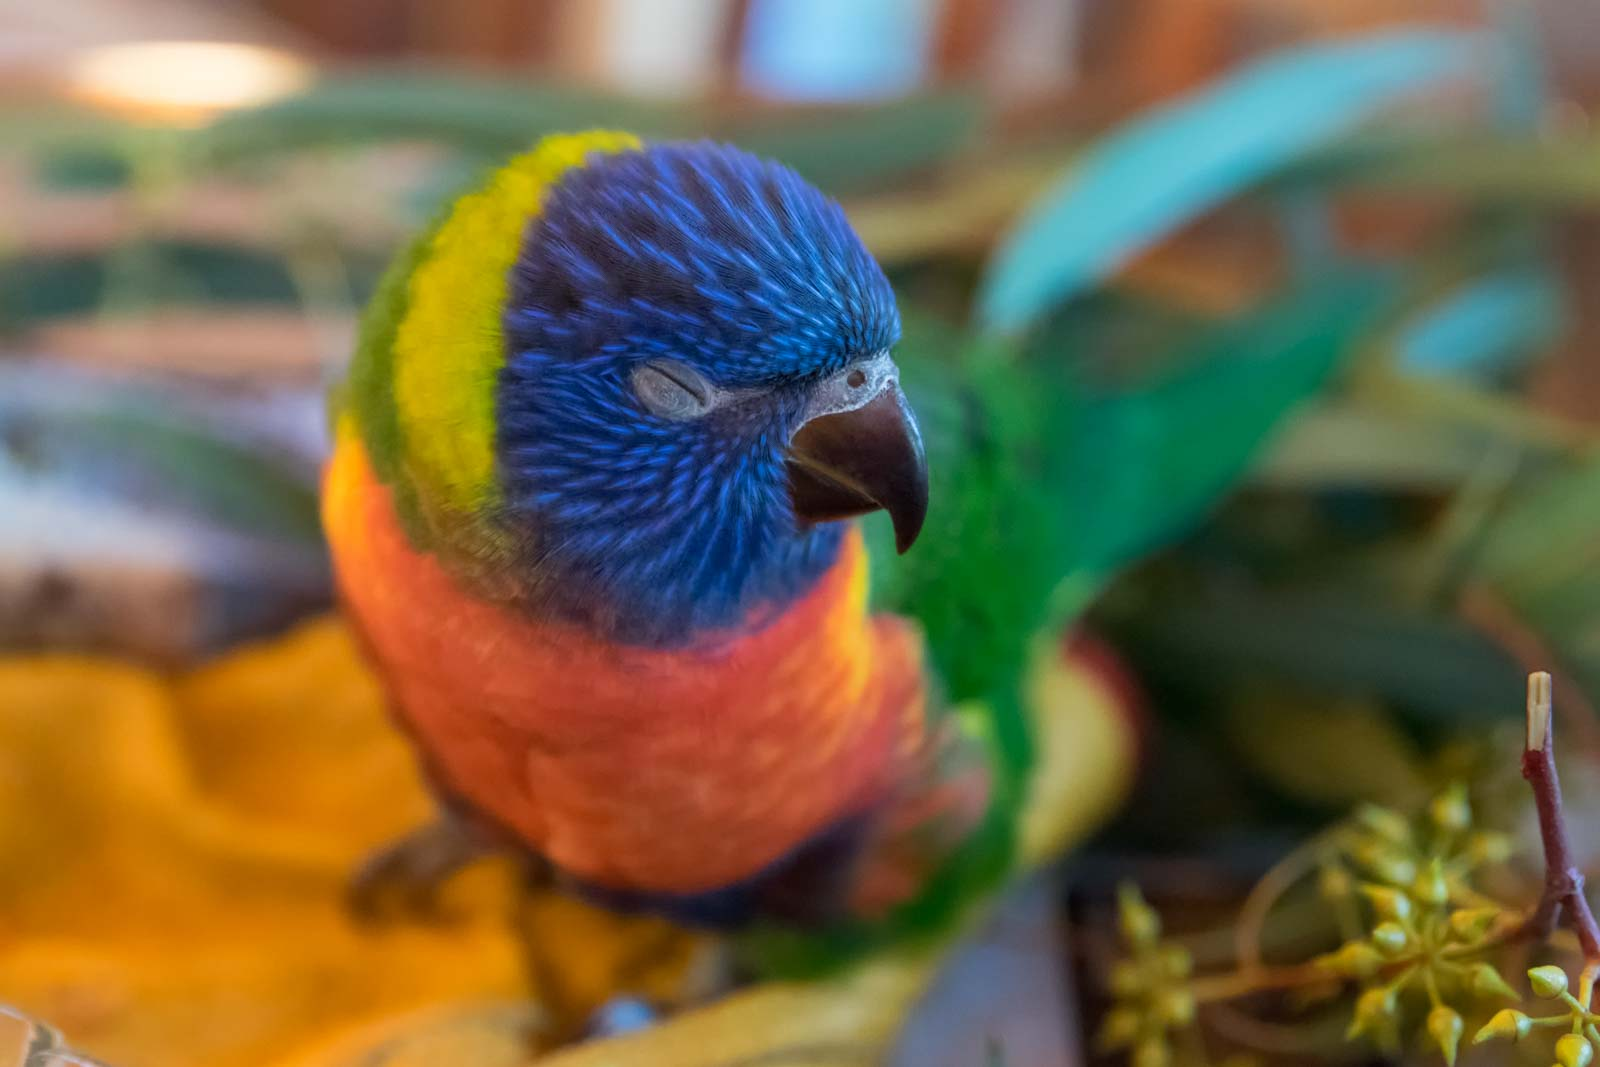 A seven week old rainbow lorikeet naps on a table in its cage.